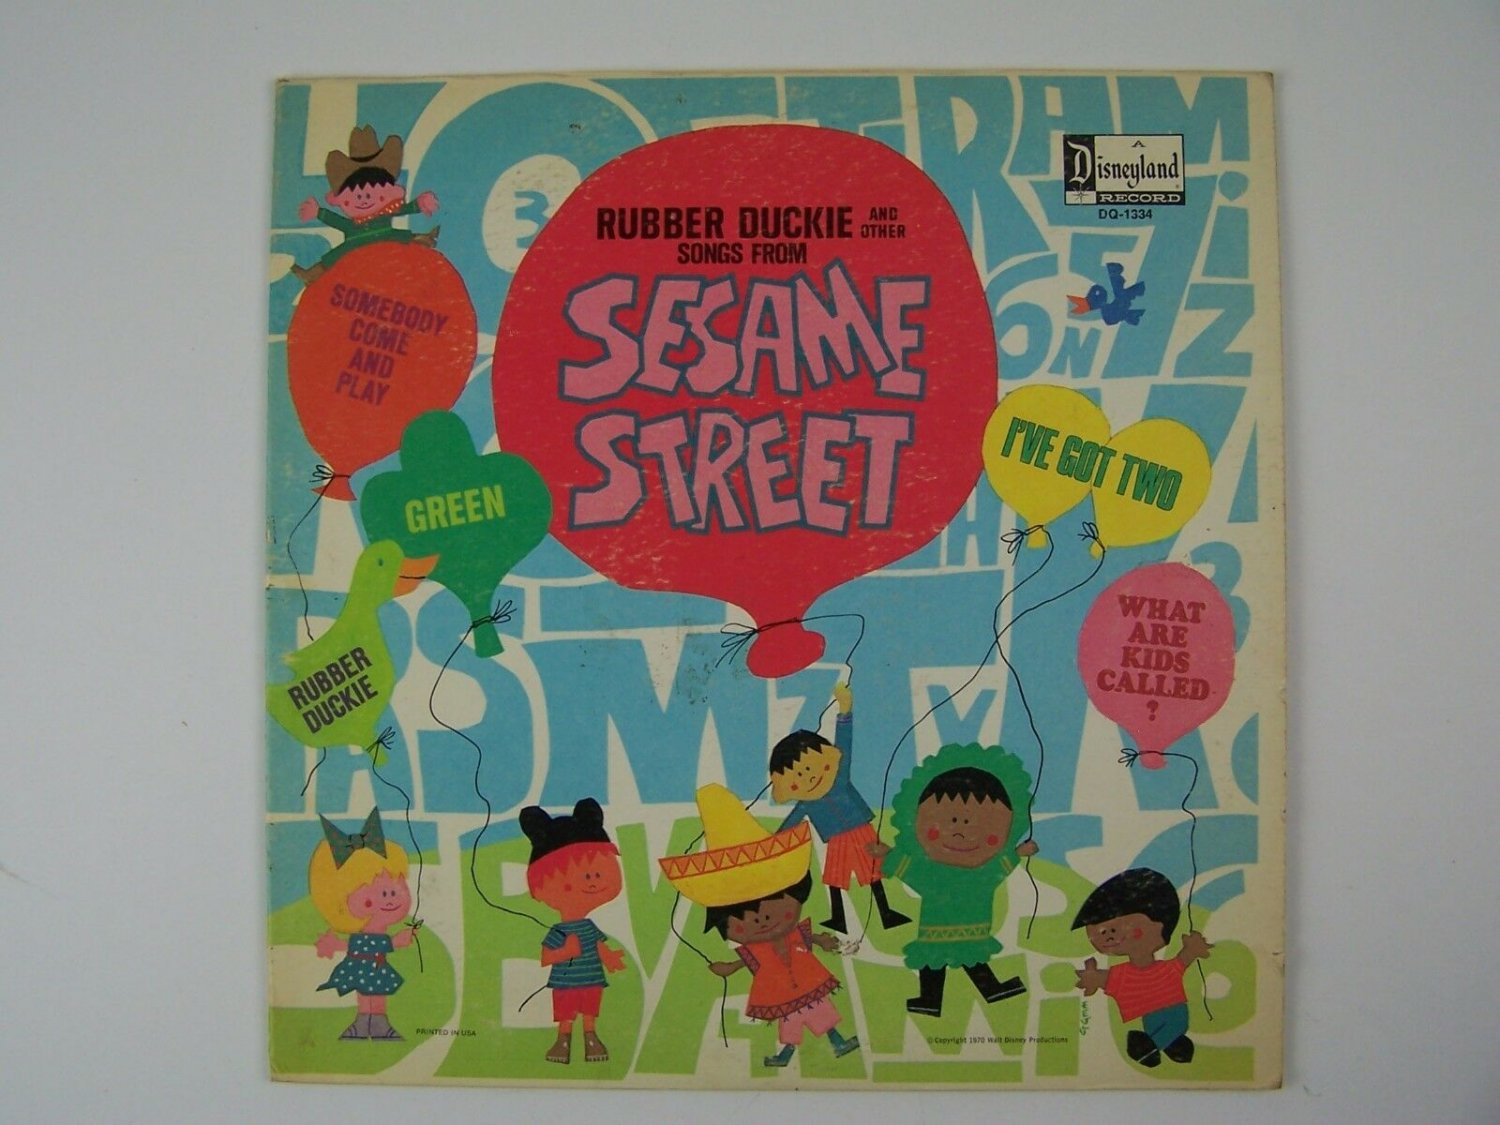 Sesame Street - Rubber Duckie And Other Songs From Sesame Street Vinyl LP Record